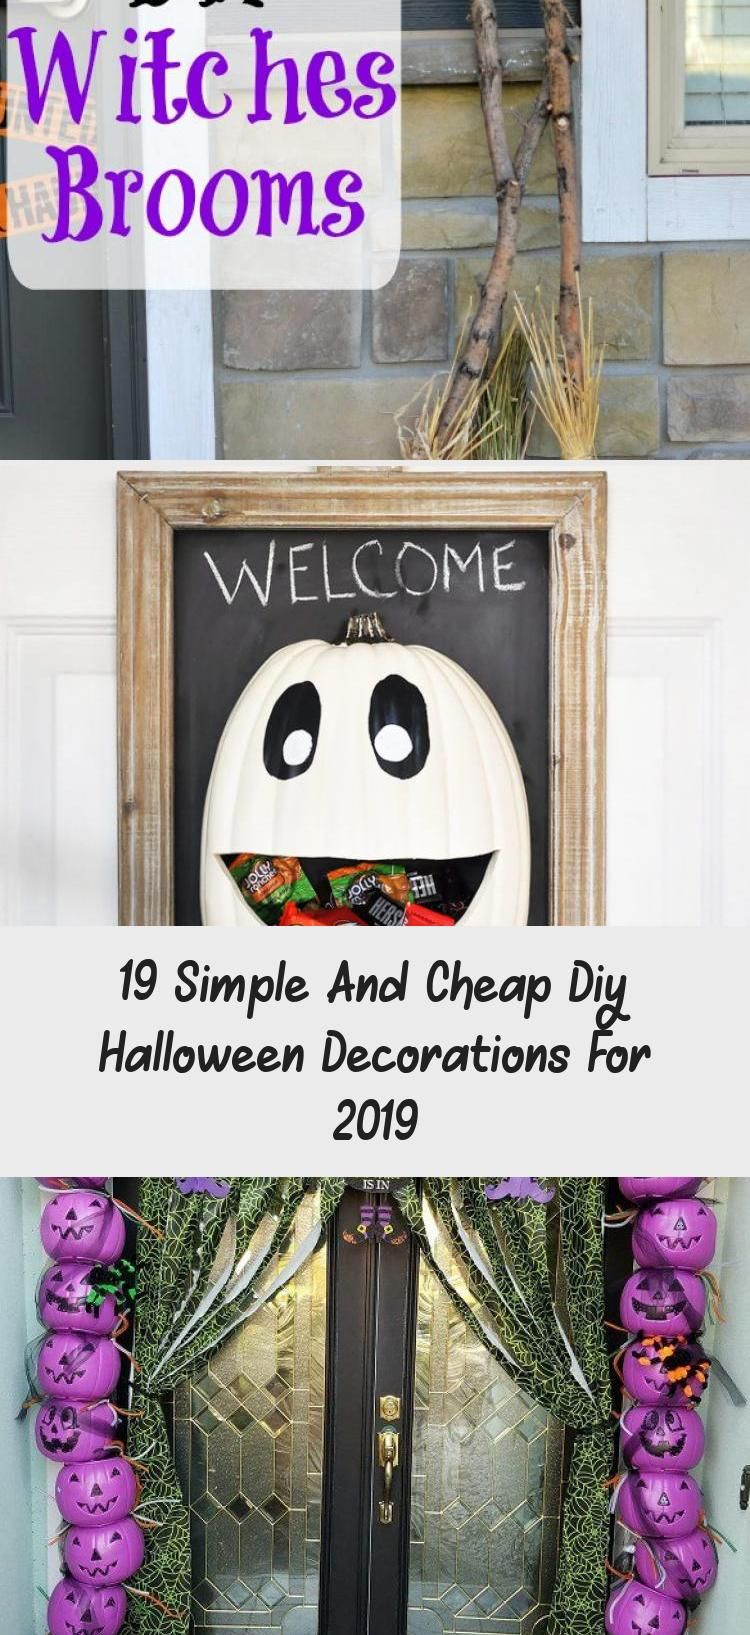 19 Simple And Cheap Diy Halloween Decorations For 2019 #cheapdiyhalloweendecorations